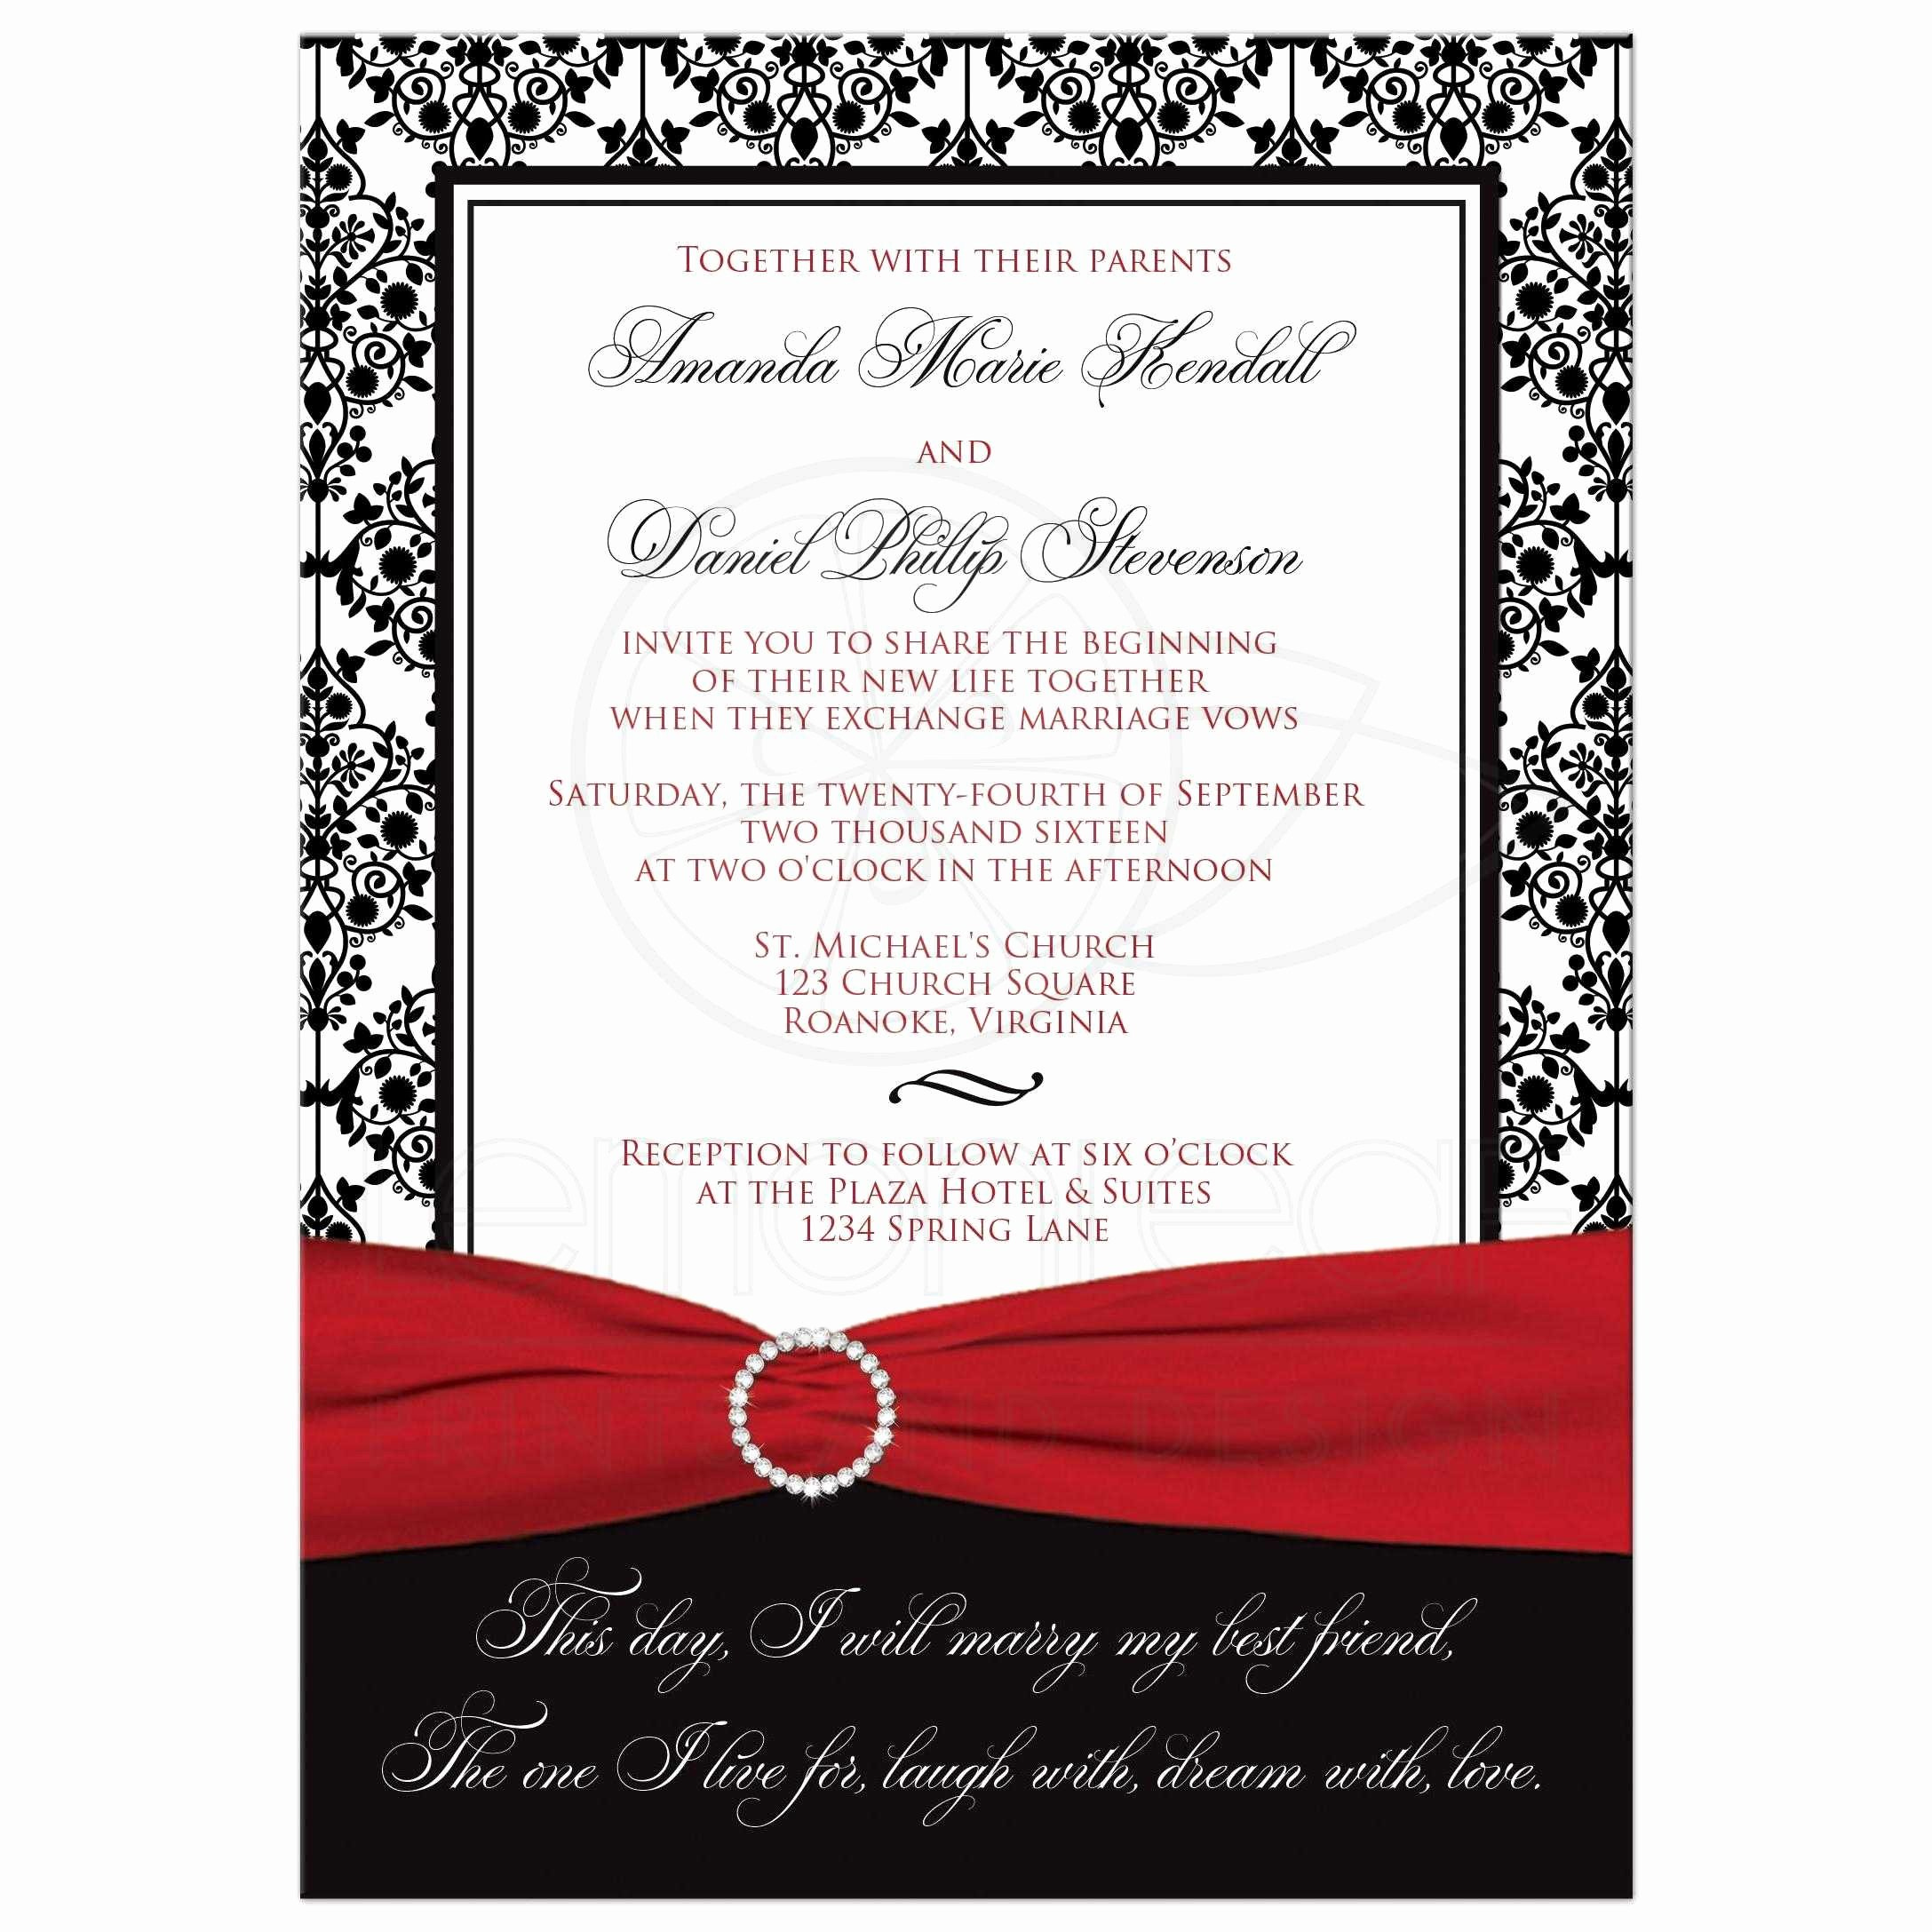 Black and White Invitations New Wedding Invitation Black White Damask Printed Red Ribbon